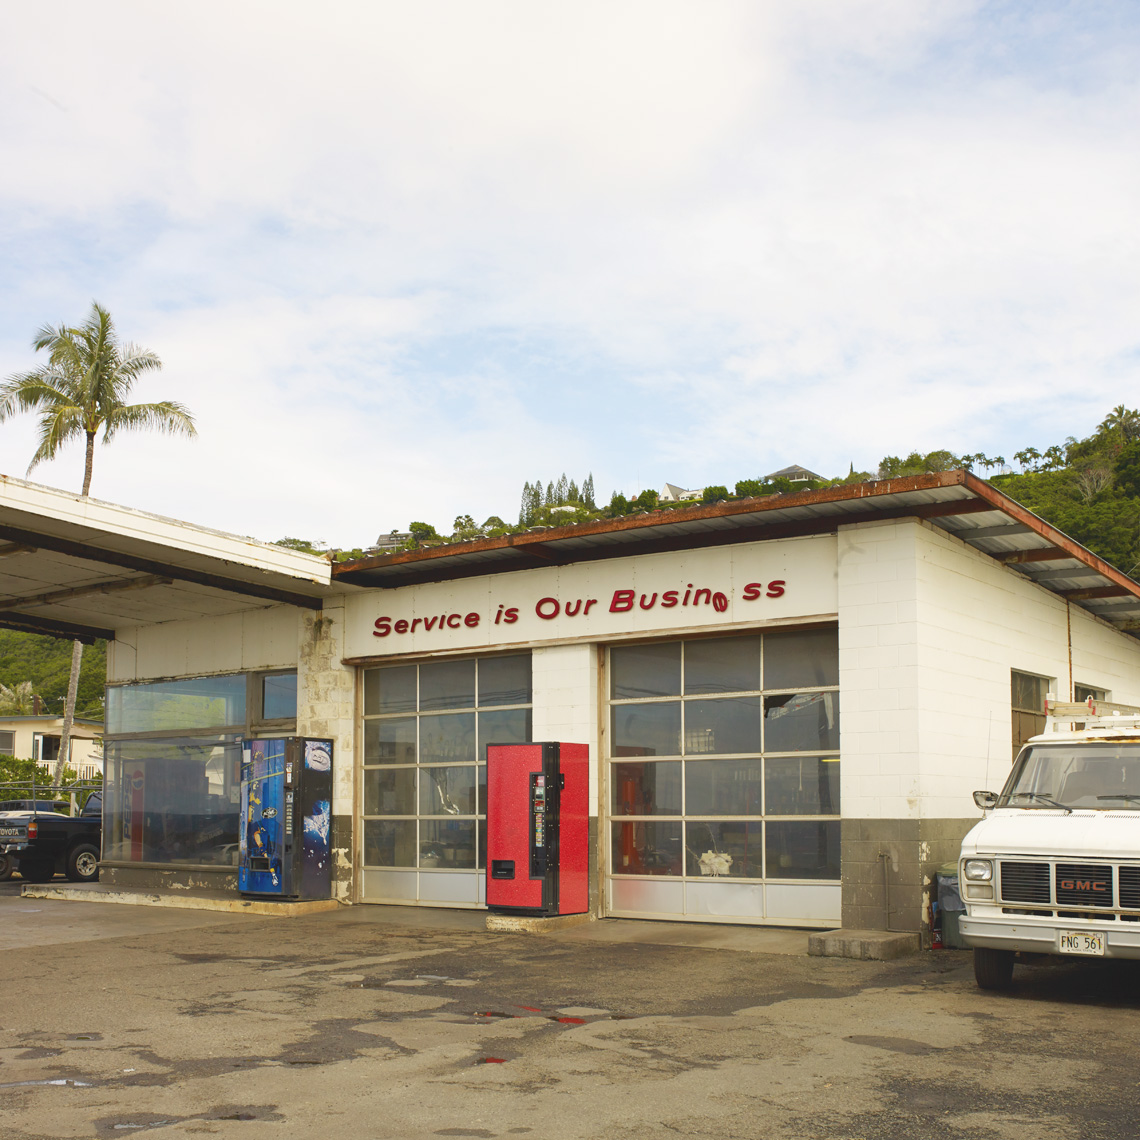 north shore oahu - service station